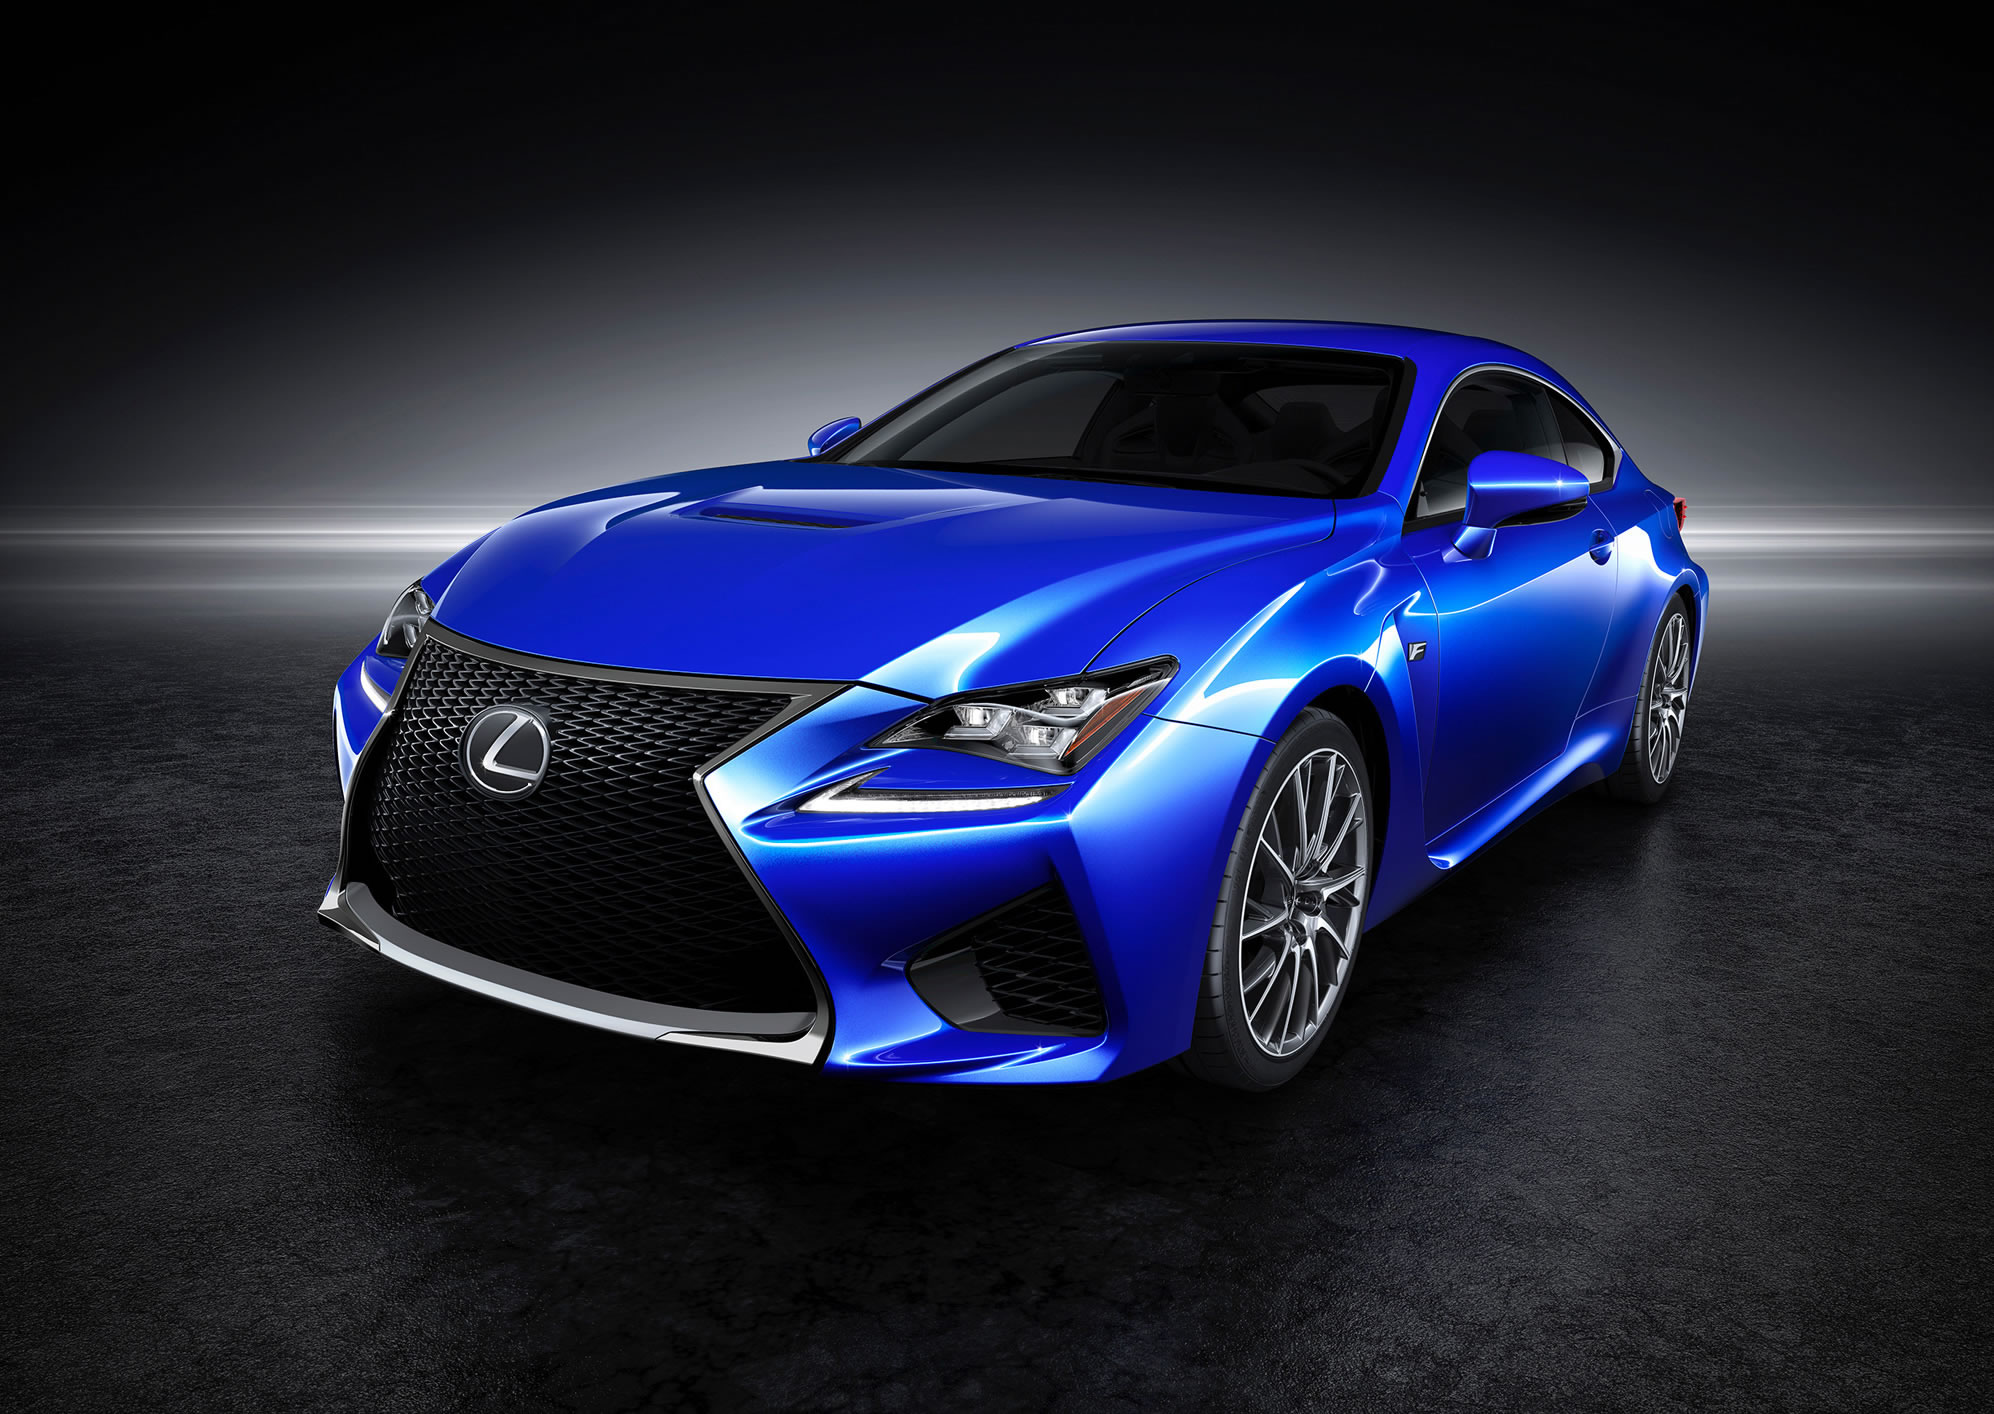 2015 lexus rc f front photo exceed blue metallic color size 1994 x 1414 nr 1 54. Black Bedroom Furniture Sets. Home Design Ideas